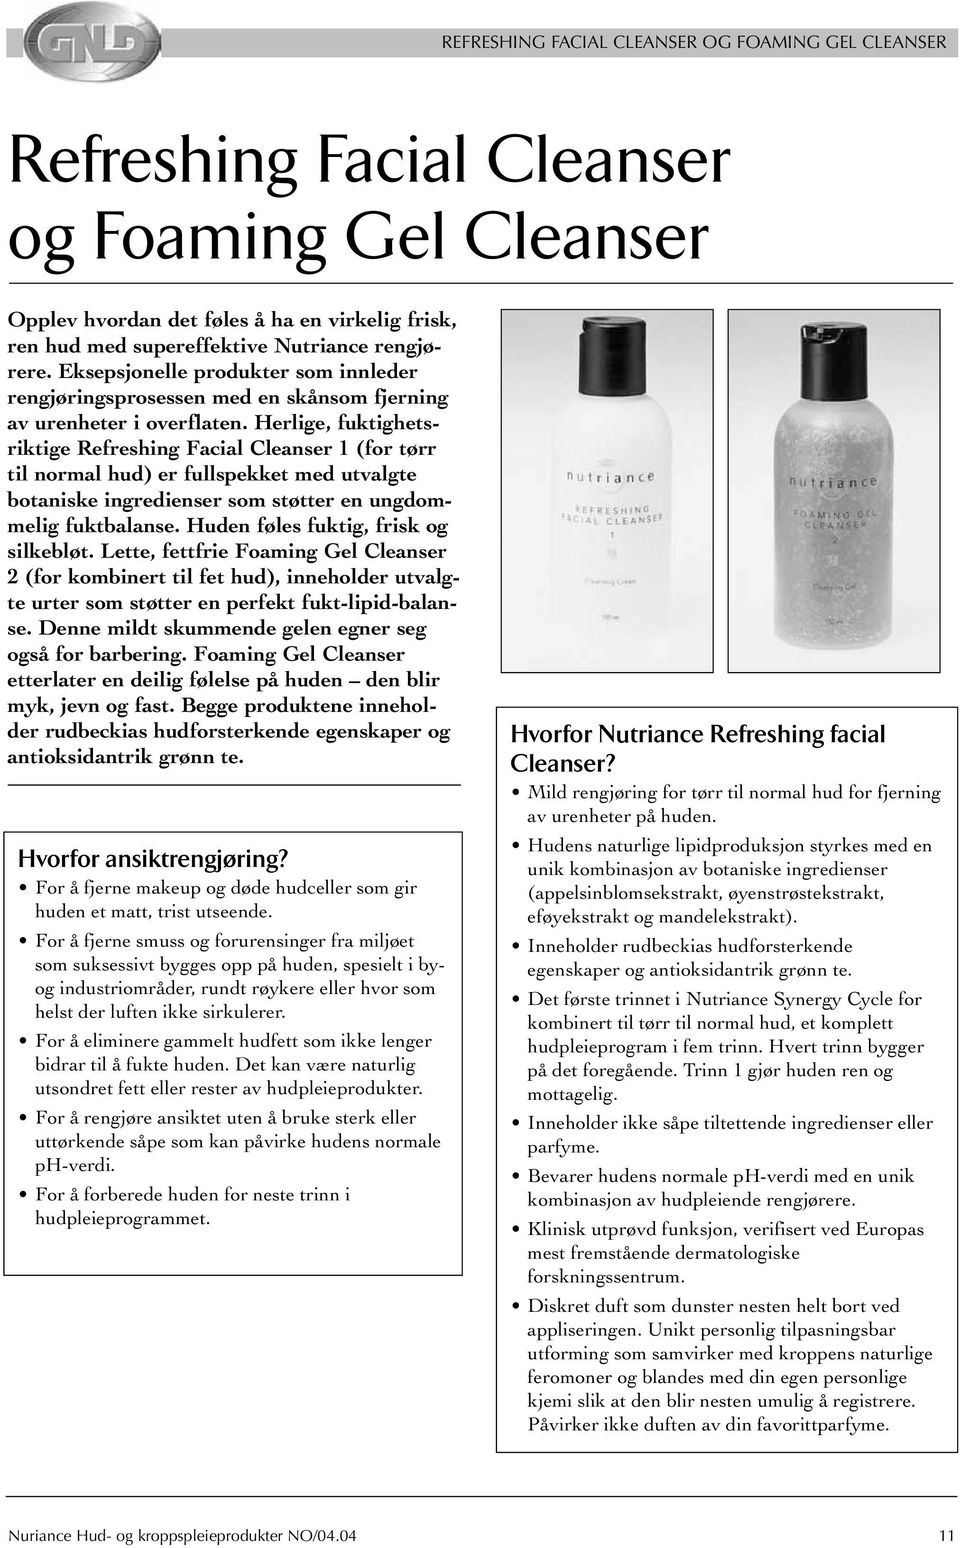 Herlige, fuktighetsriktige Refreshing Facial Cleanser 1 (for tørr til normal hud) er fullspekket med utvalgte botaniske ingredienser som støtter en ungdommelig fuktbalanse.